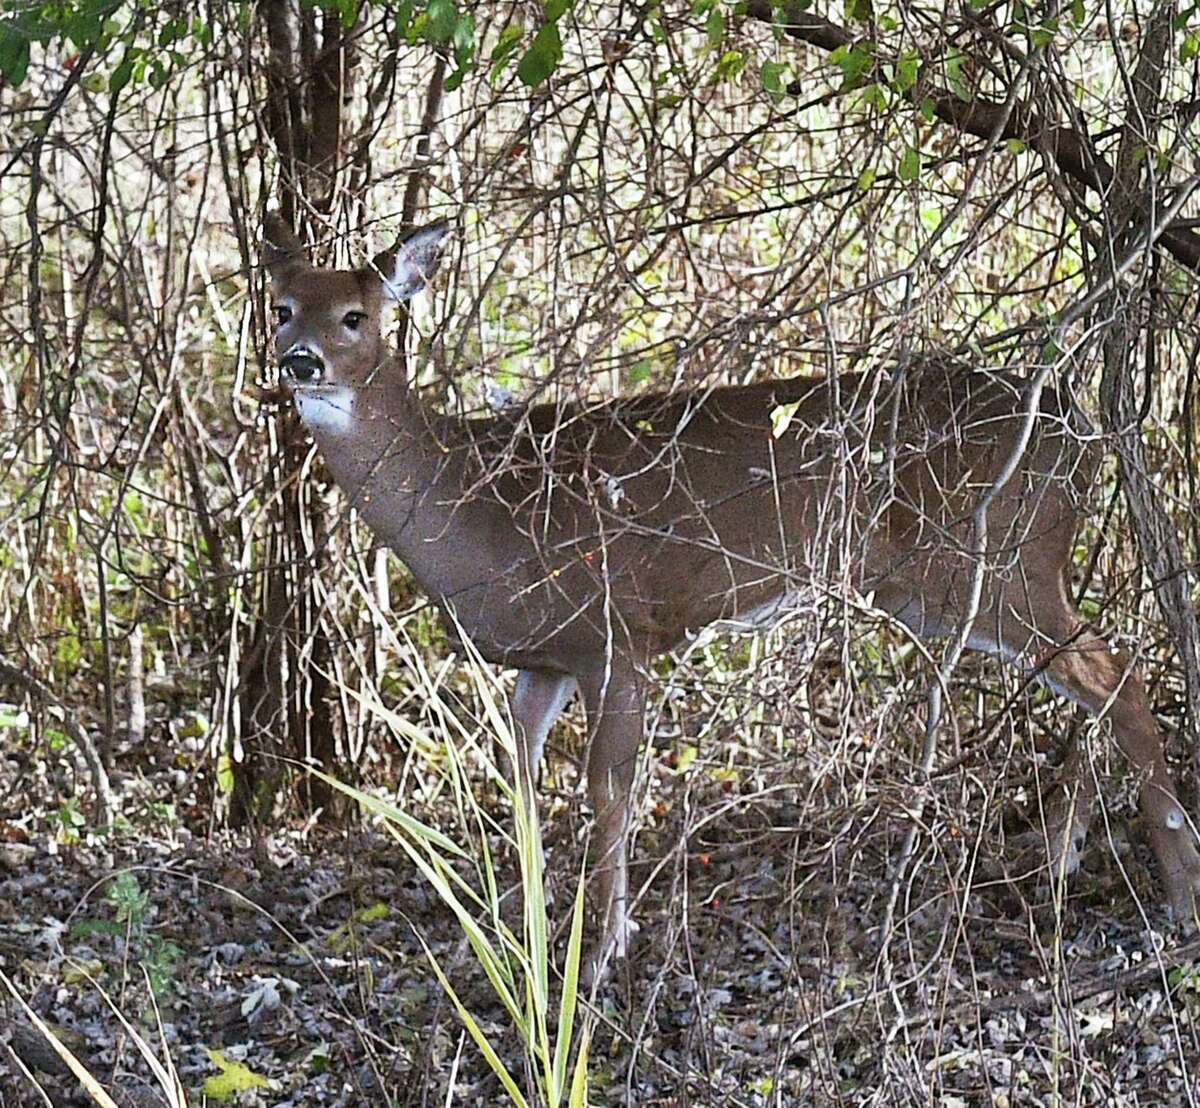 A white-tailed deer in the brush along Route 787 Wednesday Nov. 7, 2018 in Menands, NY.(John Carl D'Annibale/Times Union)